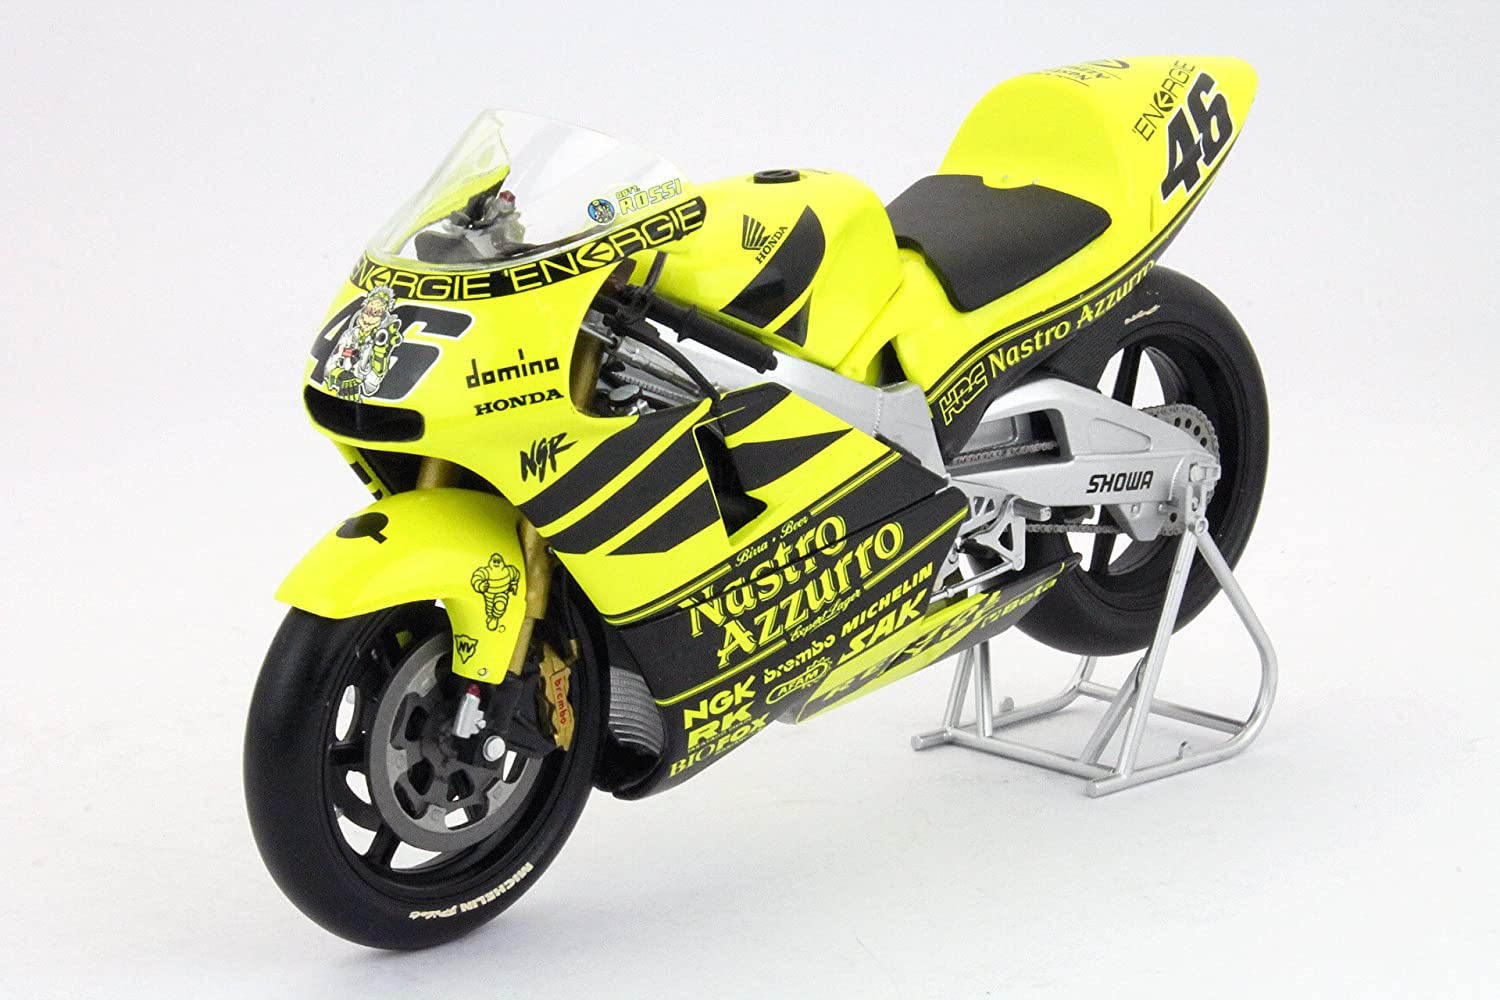 Rossi 1//12 Valentino Rossi Collection Minichamps 122016946 Honda Nsr 500 Preseason 2001 V